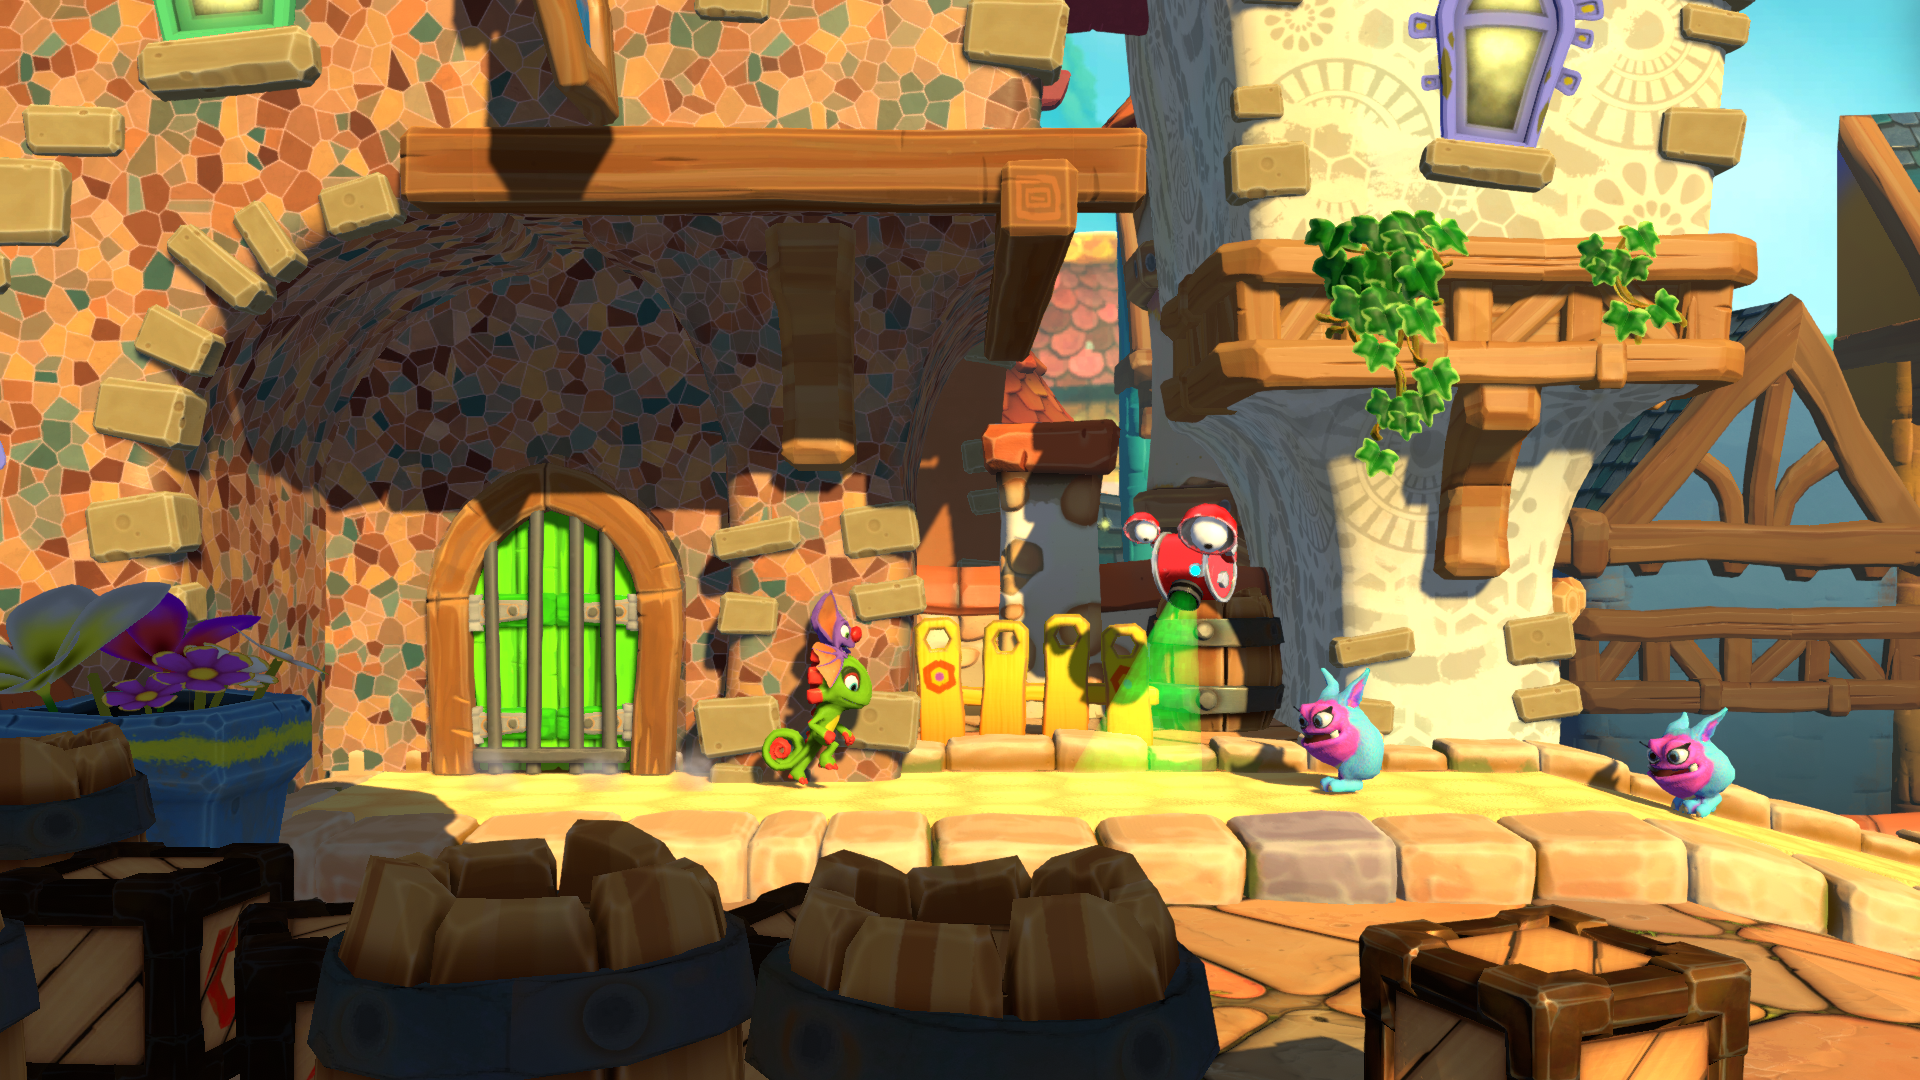 Yooka-Laylee et l'impossible Lair Screenshots